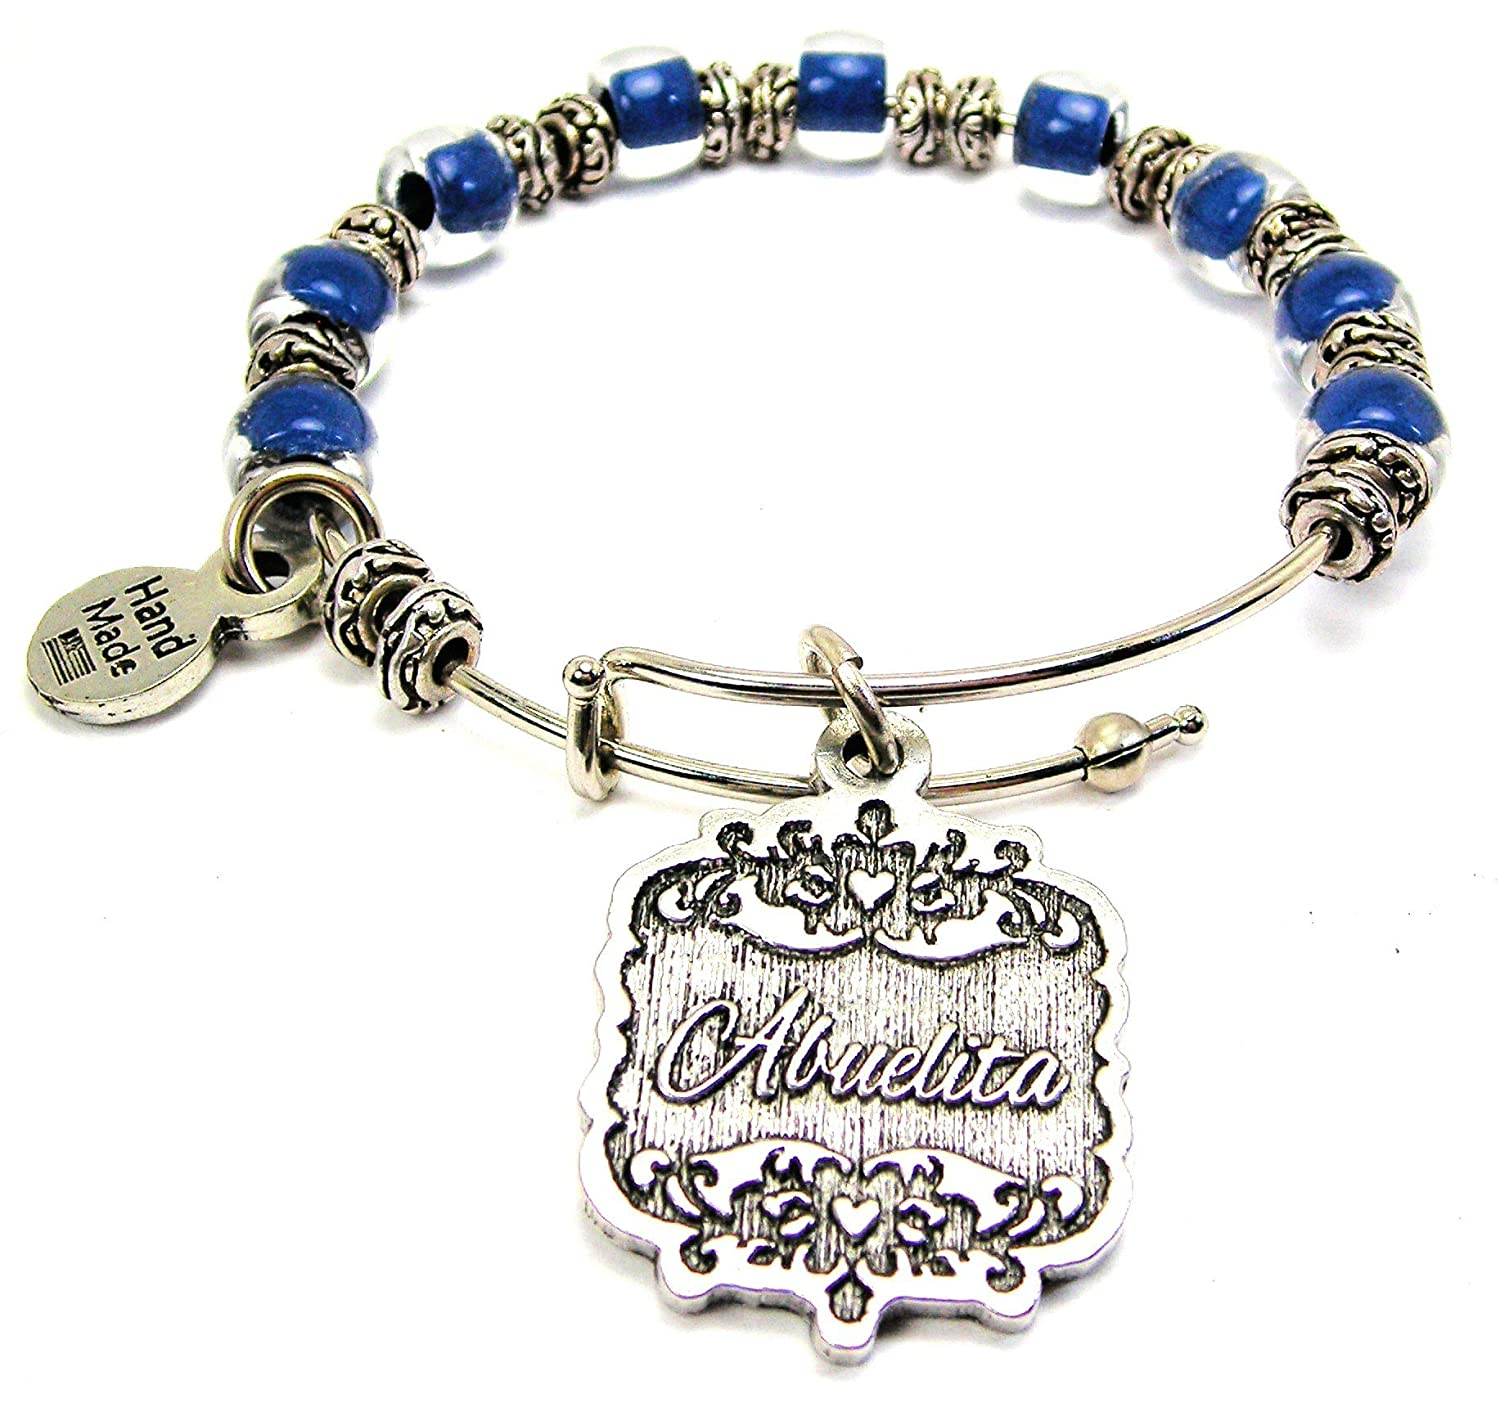 Chubby Chico Charms Abuelita Victorian Scroll Beaded 9MM Bangle Bracelet in Sapphire Blue